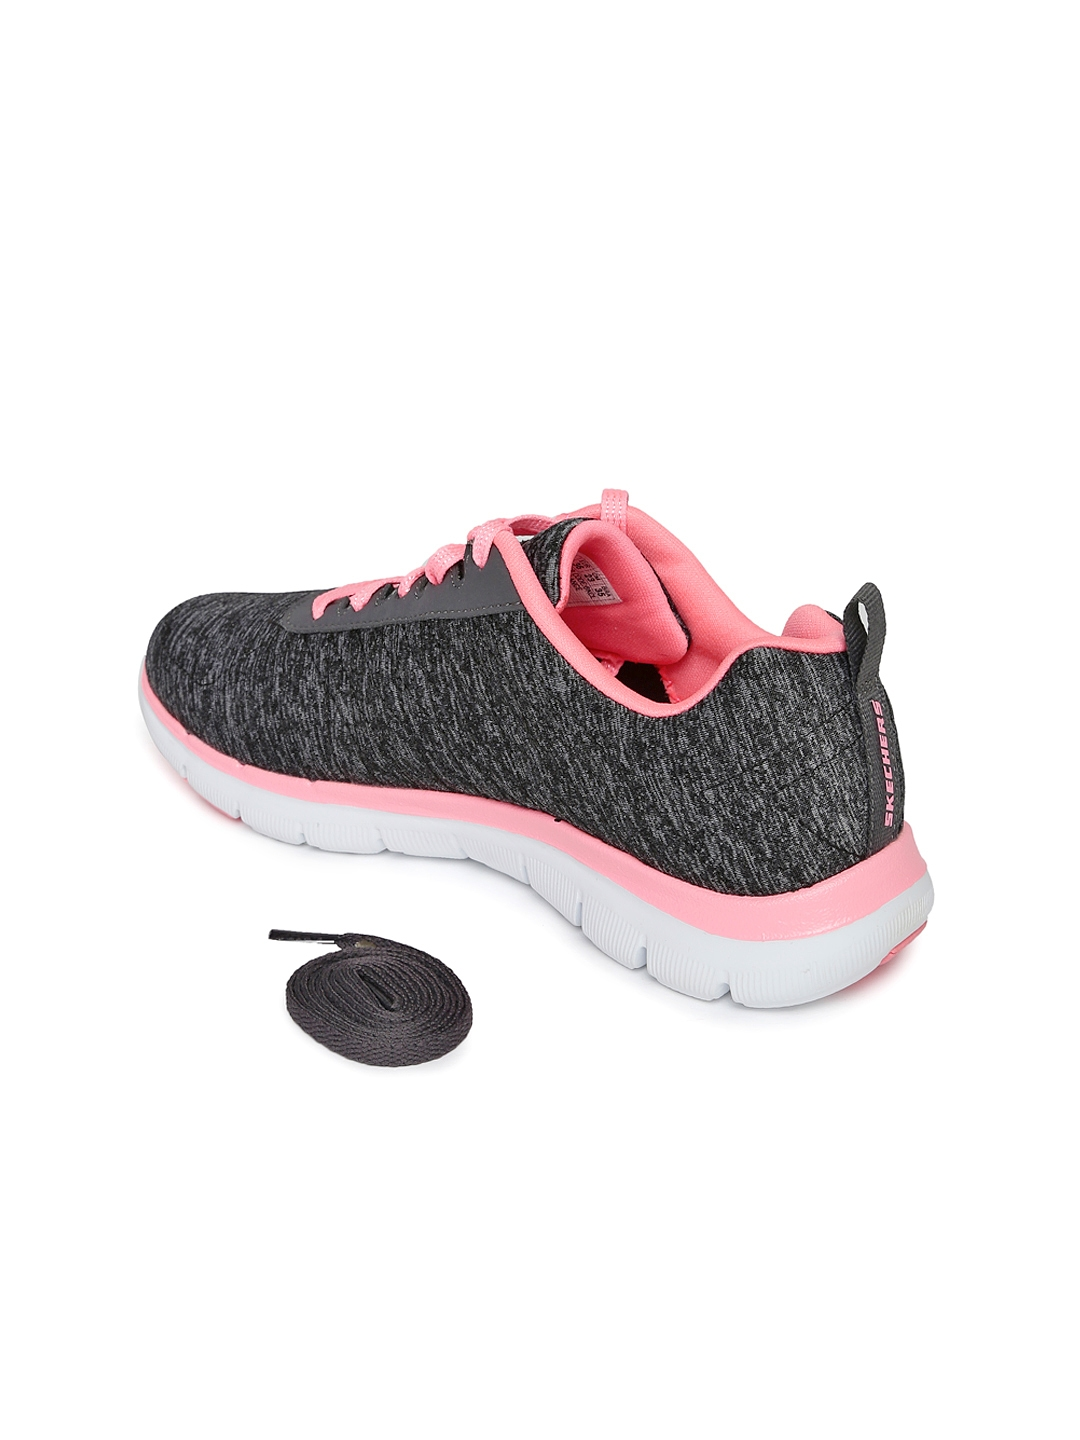 f62f9729bdb0 Buy Skechers Women Charcoal Grey Flex Appeal 2.0 Sneakers - Casual ...